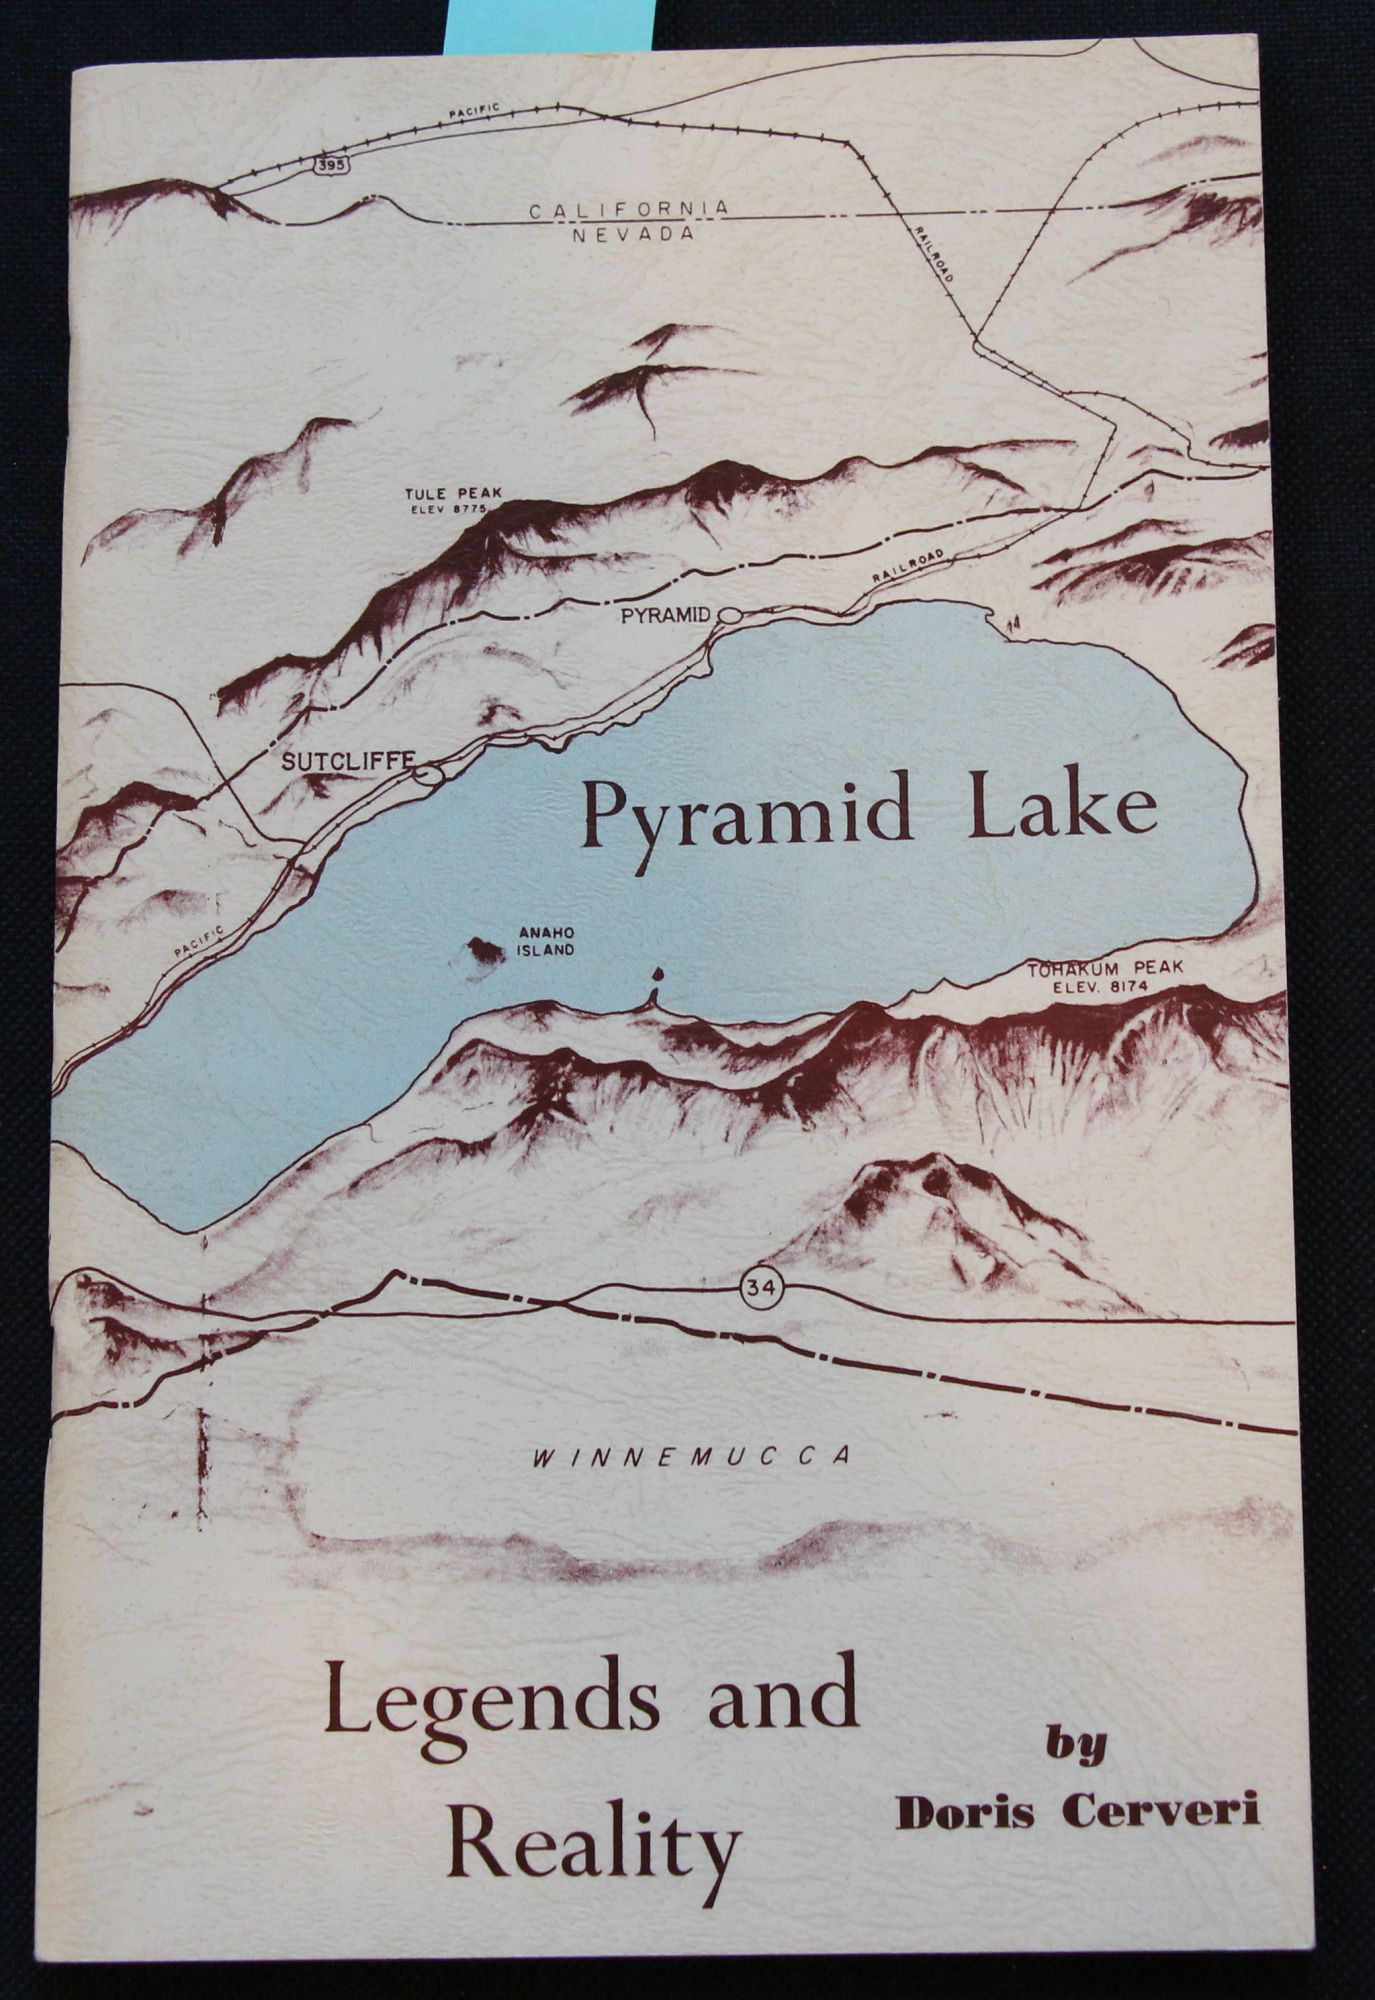 Pyramid Lake Legends and reality